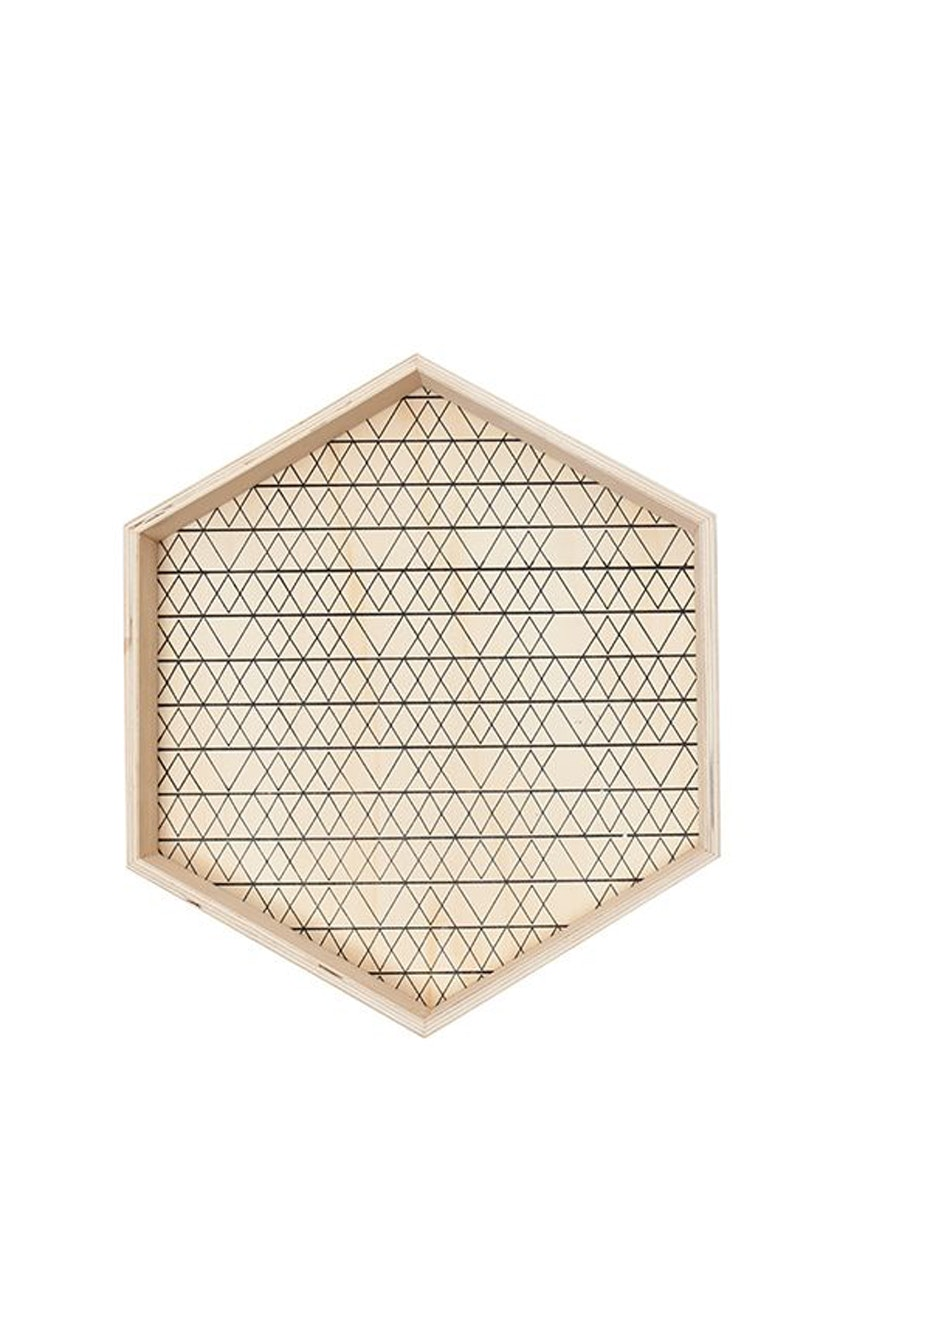 General Eclectic - Hex Wooden Tray Lg